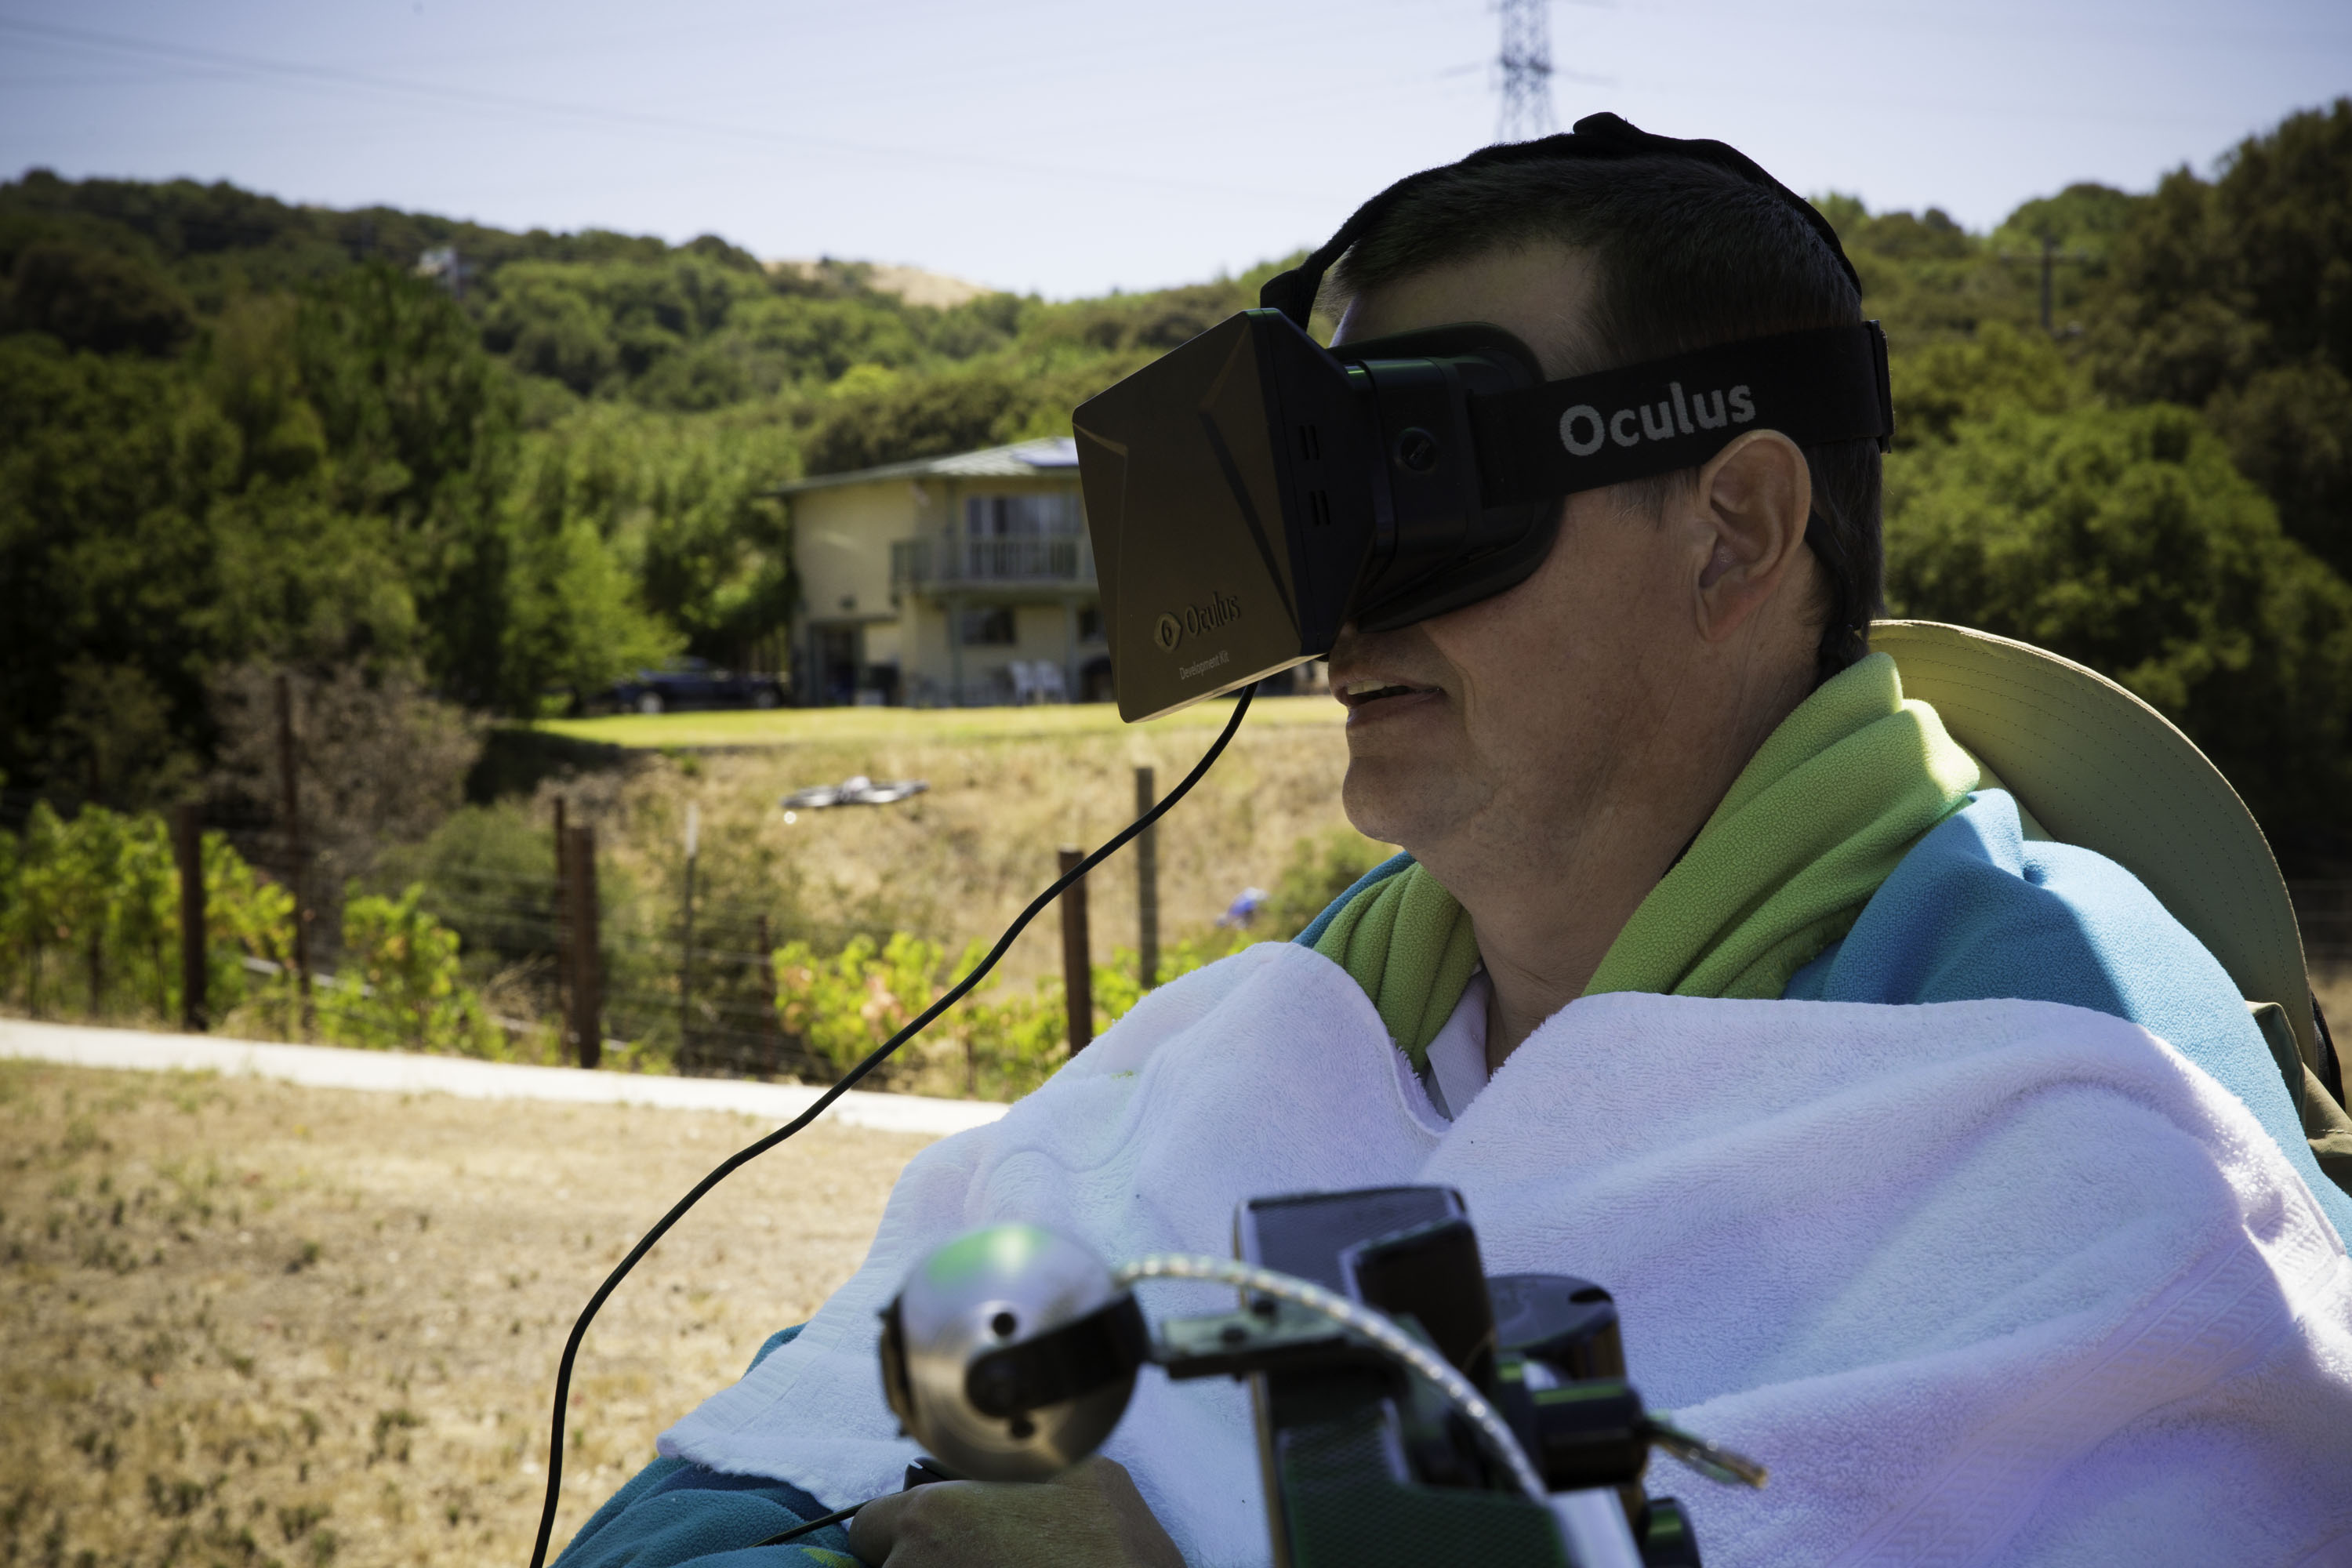 Henry Evans uses an Oculus Rift reality headset to control a camera-equipped drone to let him move virtually through the real world. Eye-tracking technology steers the drone.